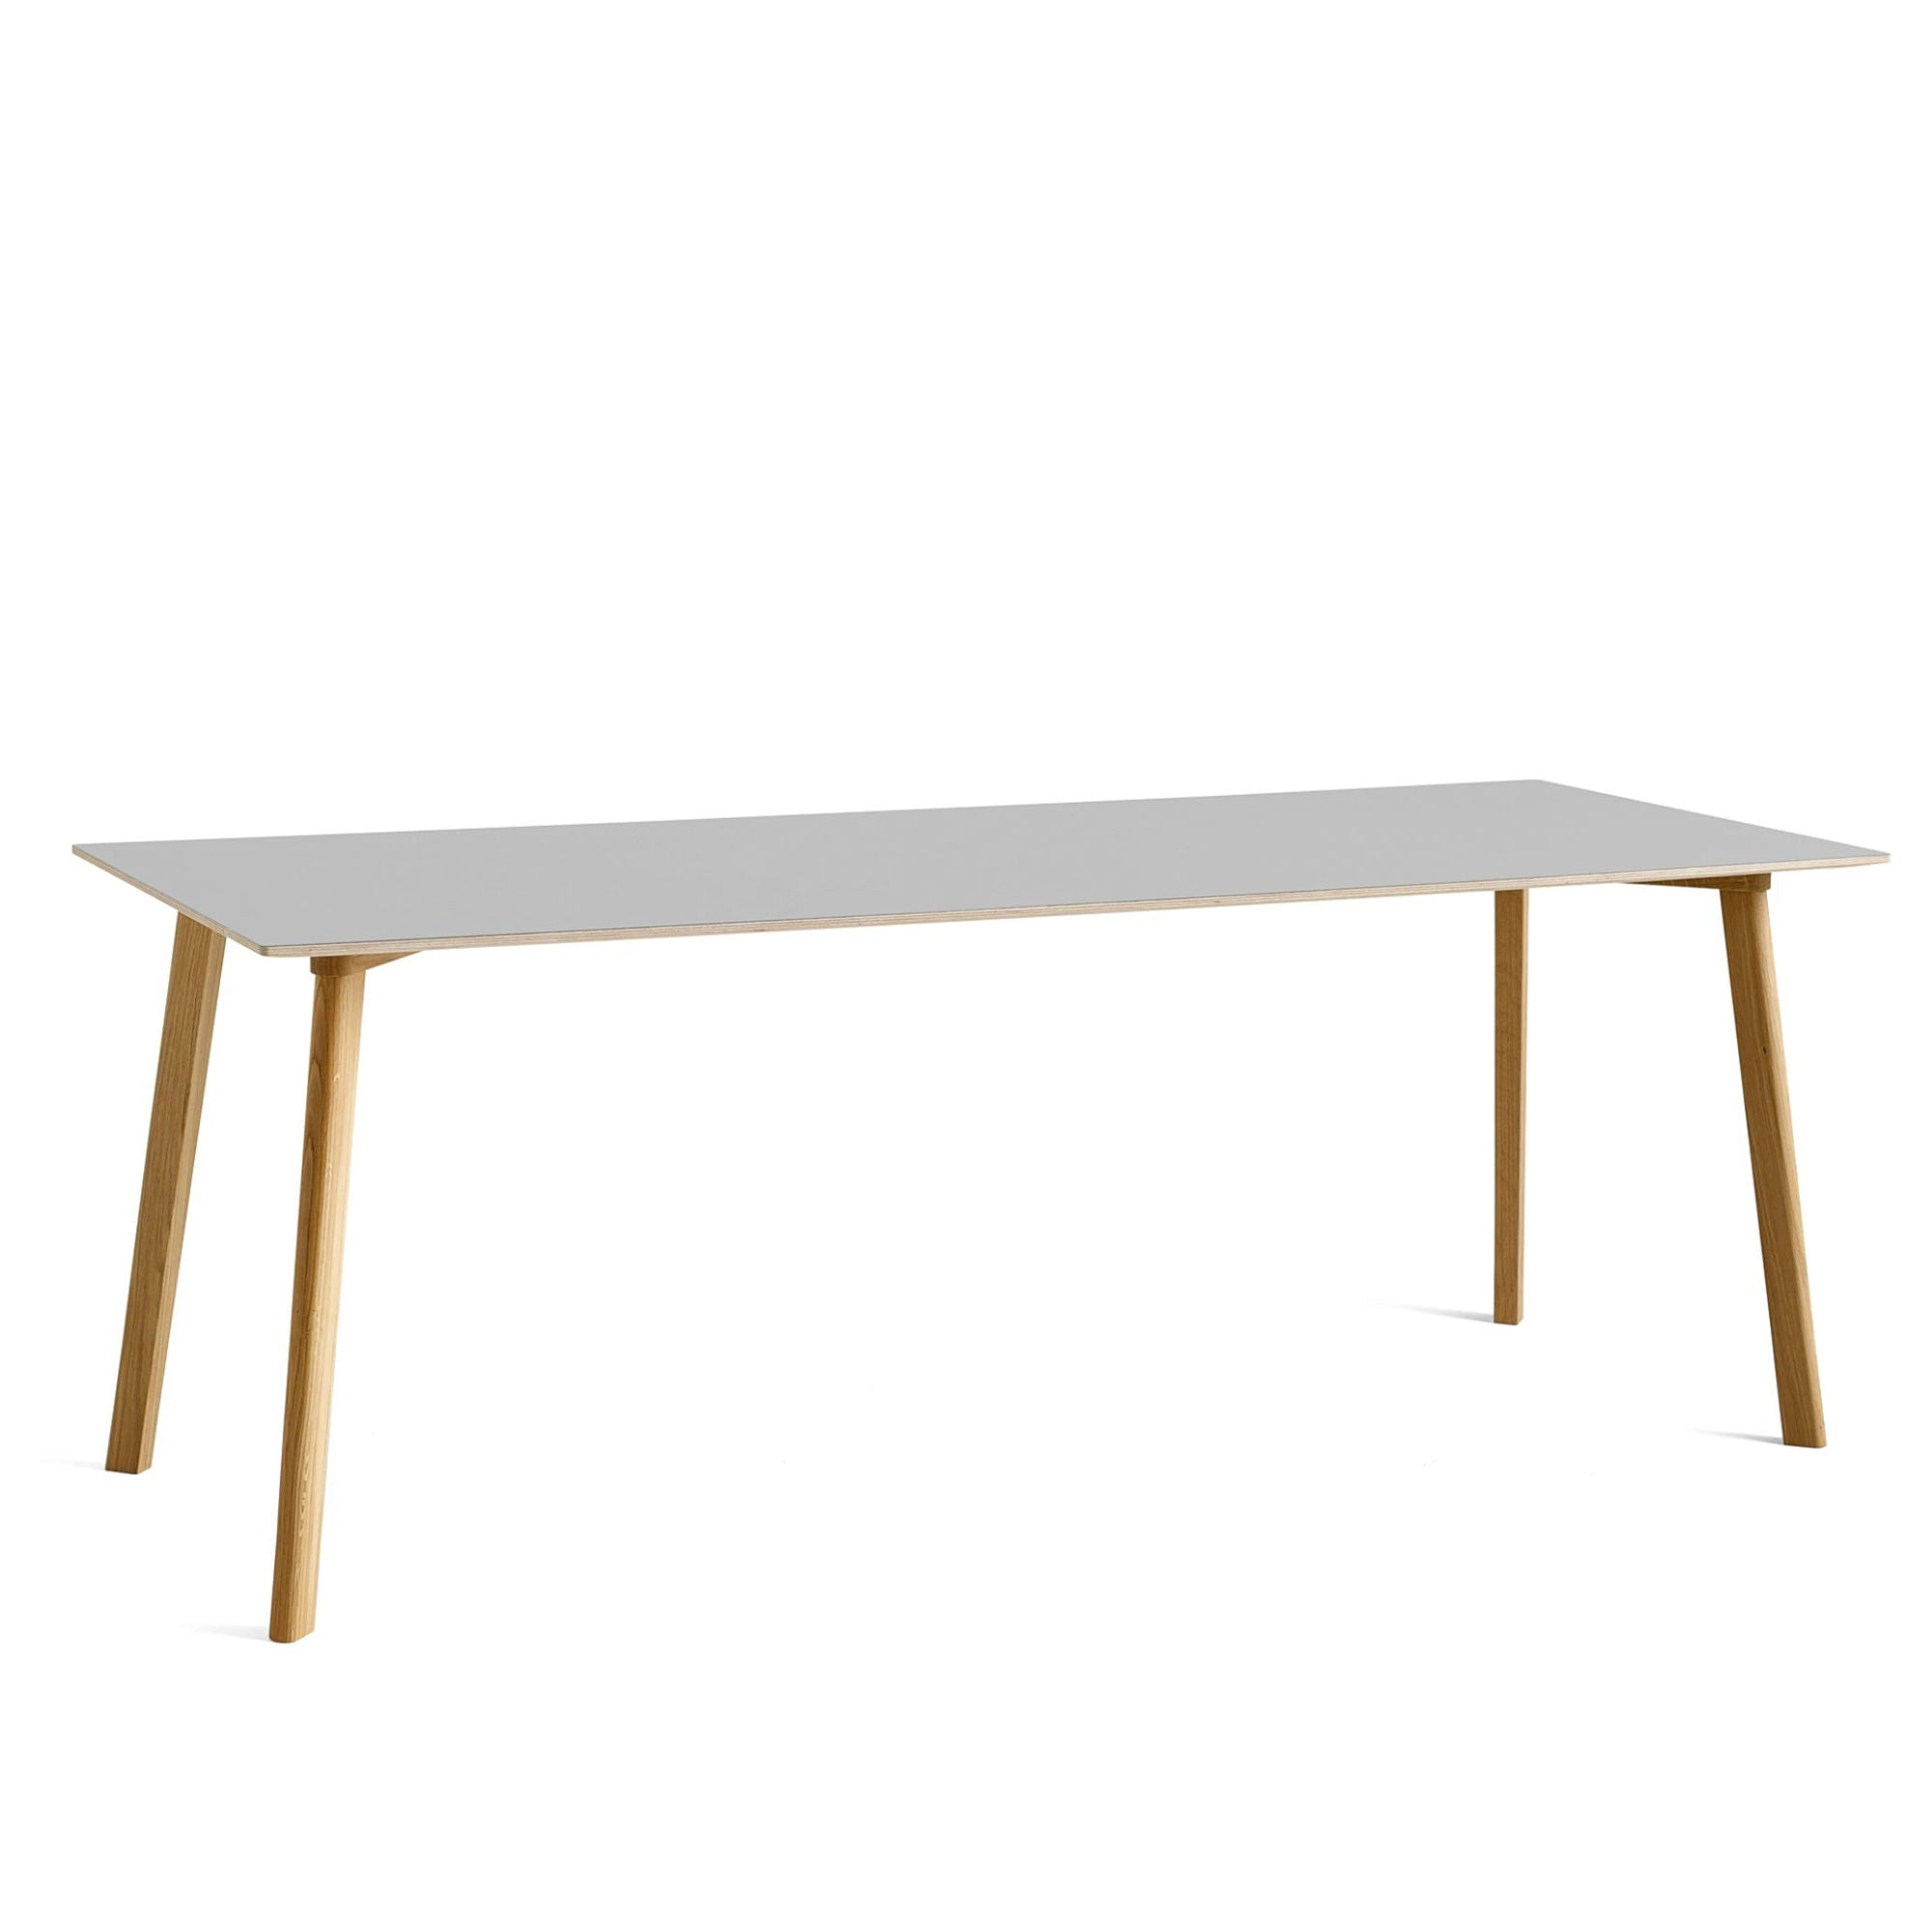 CPH Deux 210 table L200 x W75 , Dusty grey - Matt lacquered oak